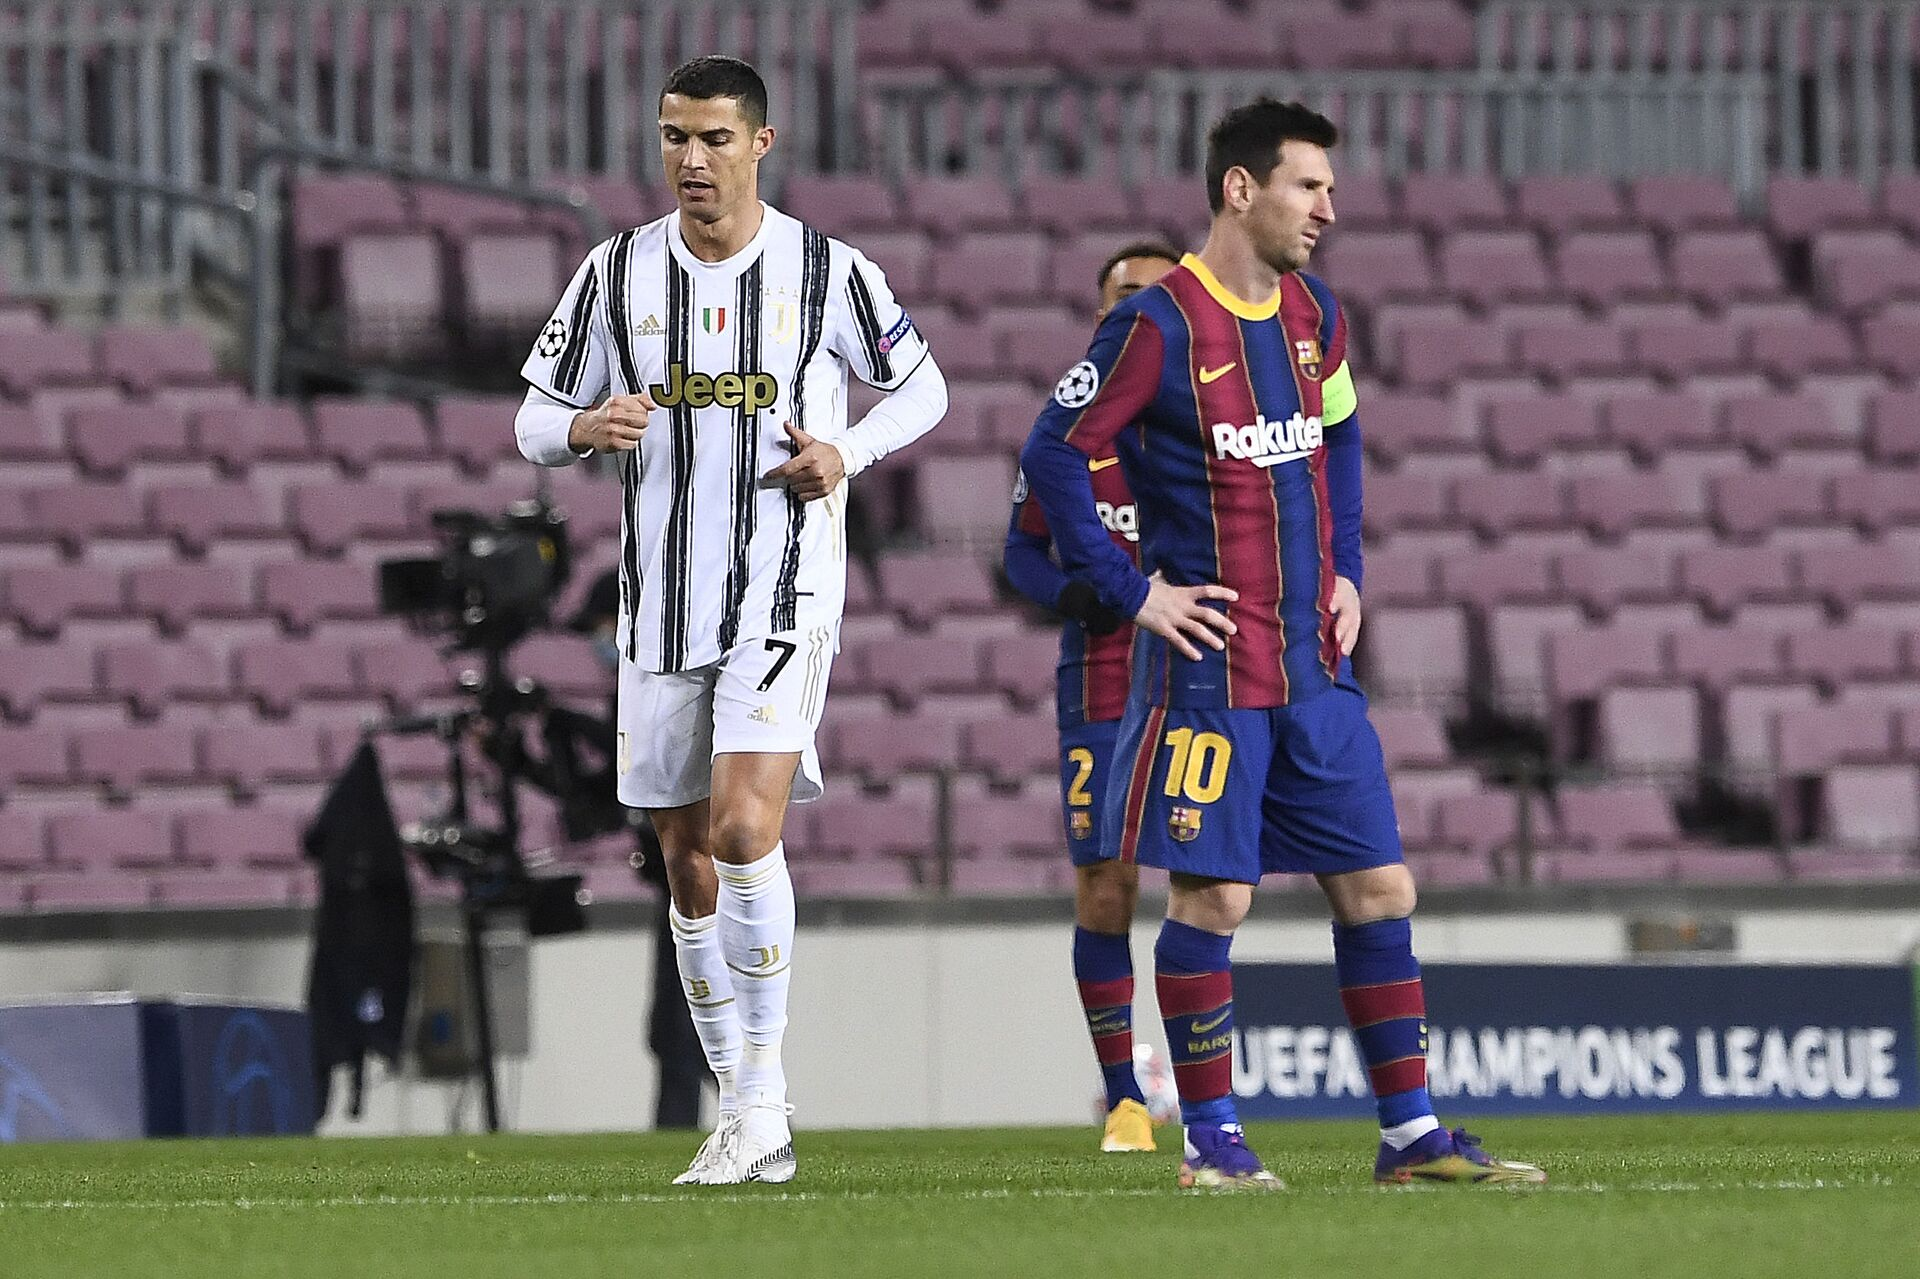 Juventus' Portuguese forward Cristiano Ronaldo (L) walks past Barcelona's Argentinian forward Lionel Messi during the UEFA Champions League group G football match between Barcelona and Juventus at the Camp Nou stadium in Barcelona on December 8, 2020 - Sputnik International, 1920, 07.09.2021